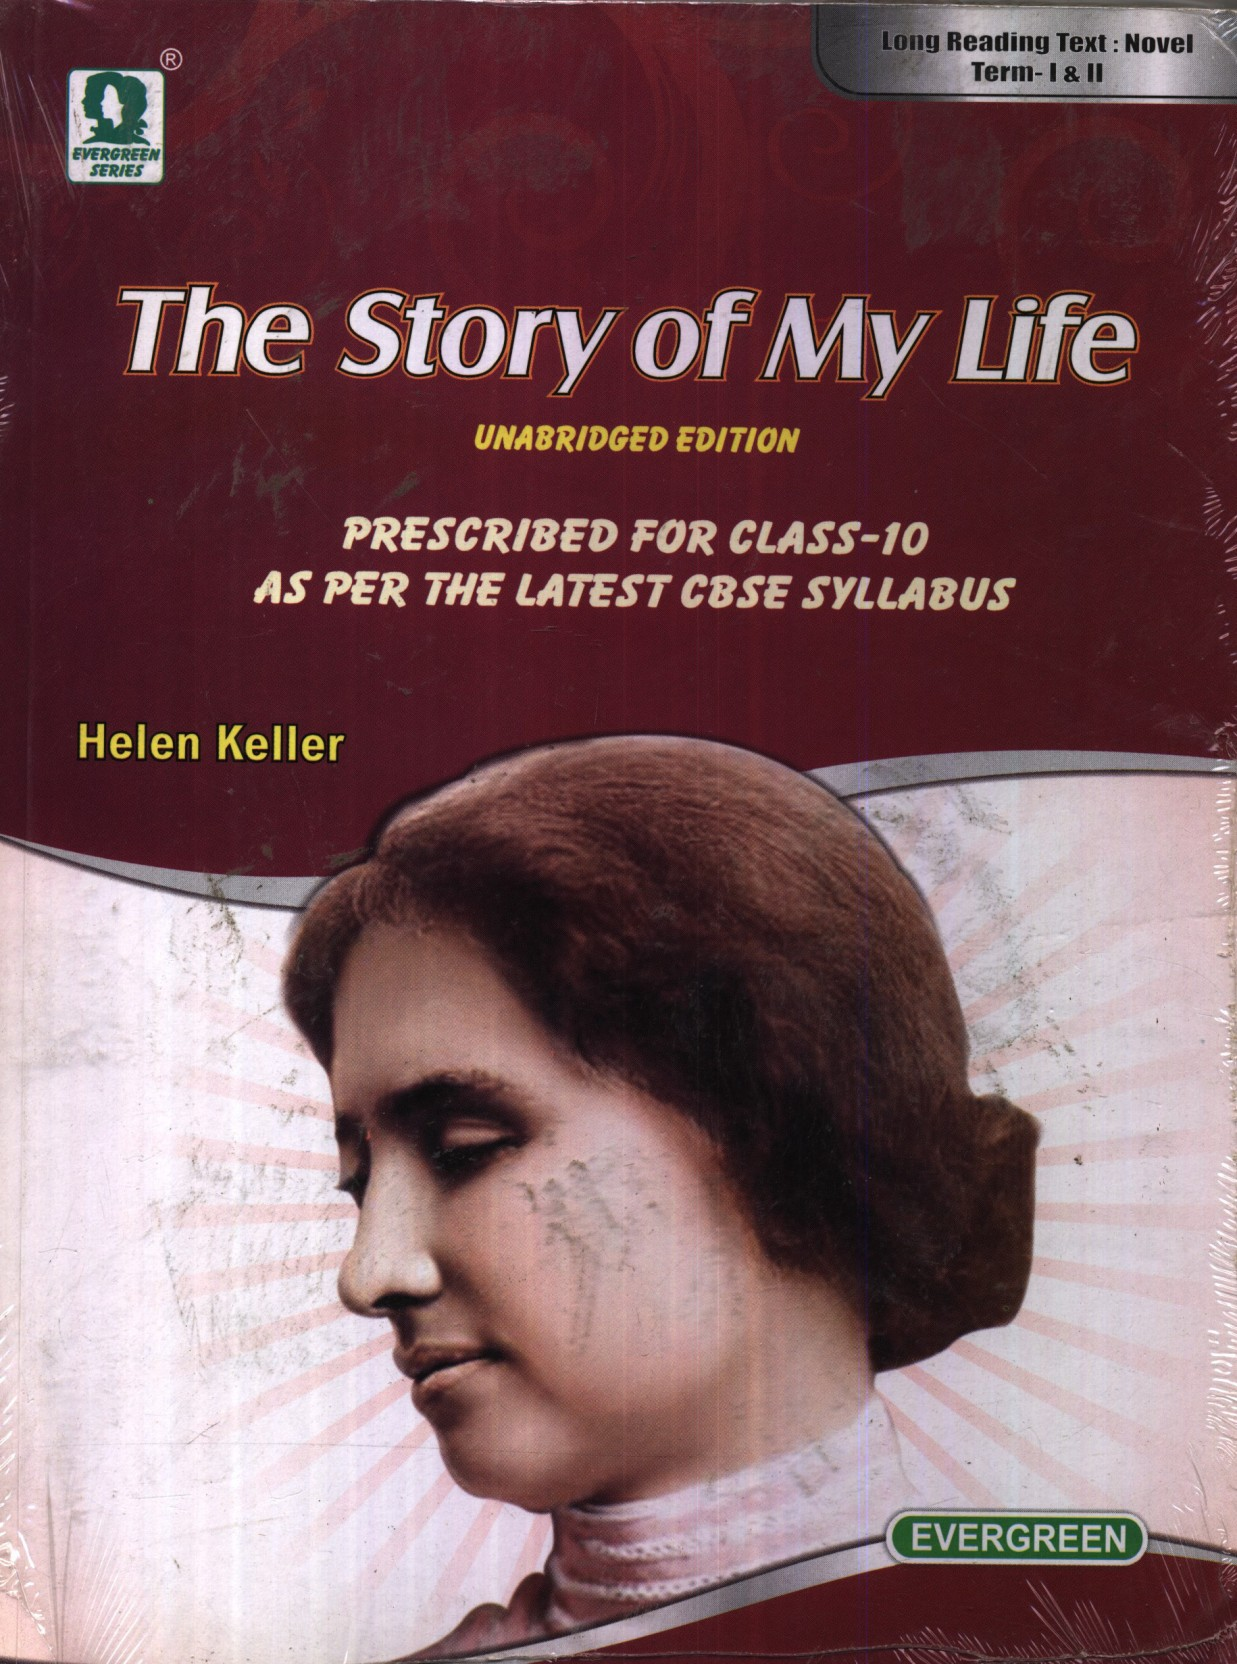 the life and writings of helen keller Voice 1 helen keller kept writing and giving speeches until she was an old woman she won many awards and knew many famous people but after she turned 80 helen had some health problems she moved back to her home and lived simply.